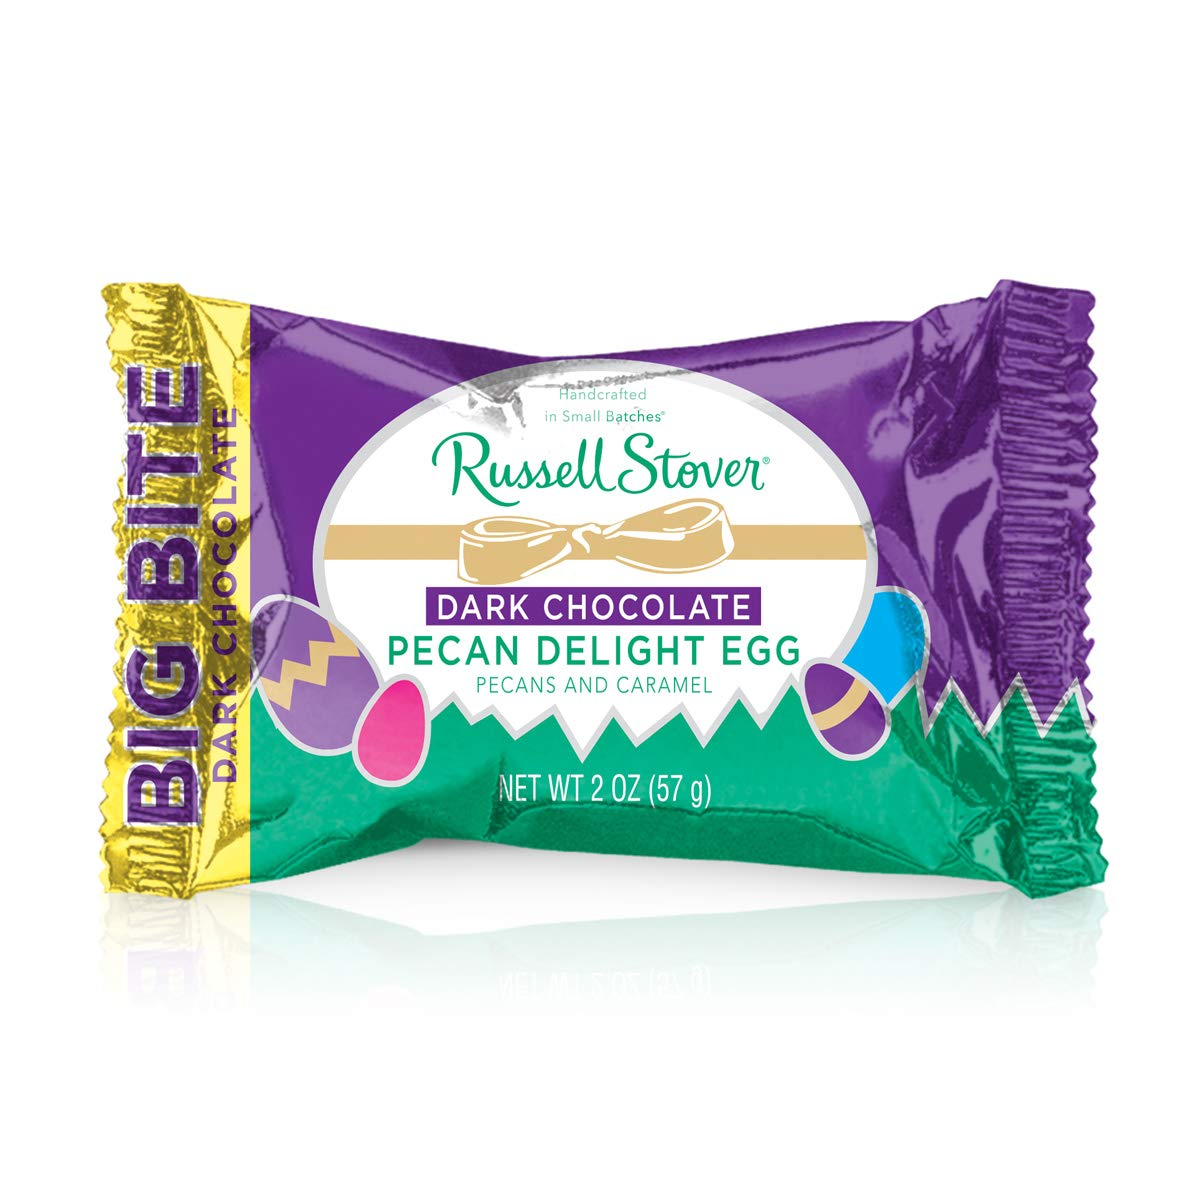 Russell Stover Dark Chocolate King Size Pecan Delight Egg, 2 oz.